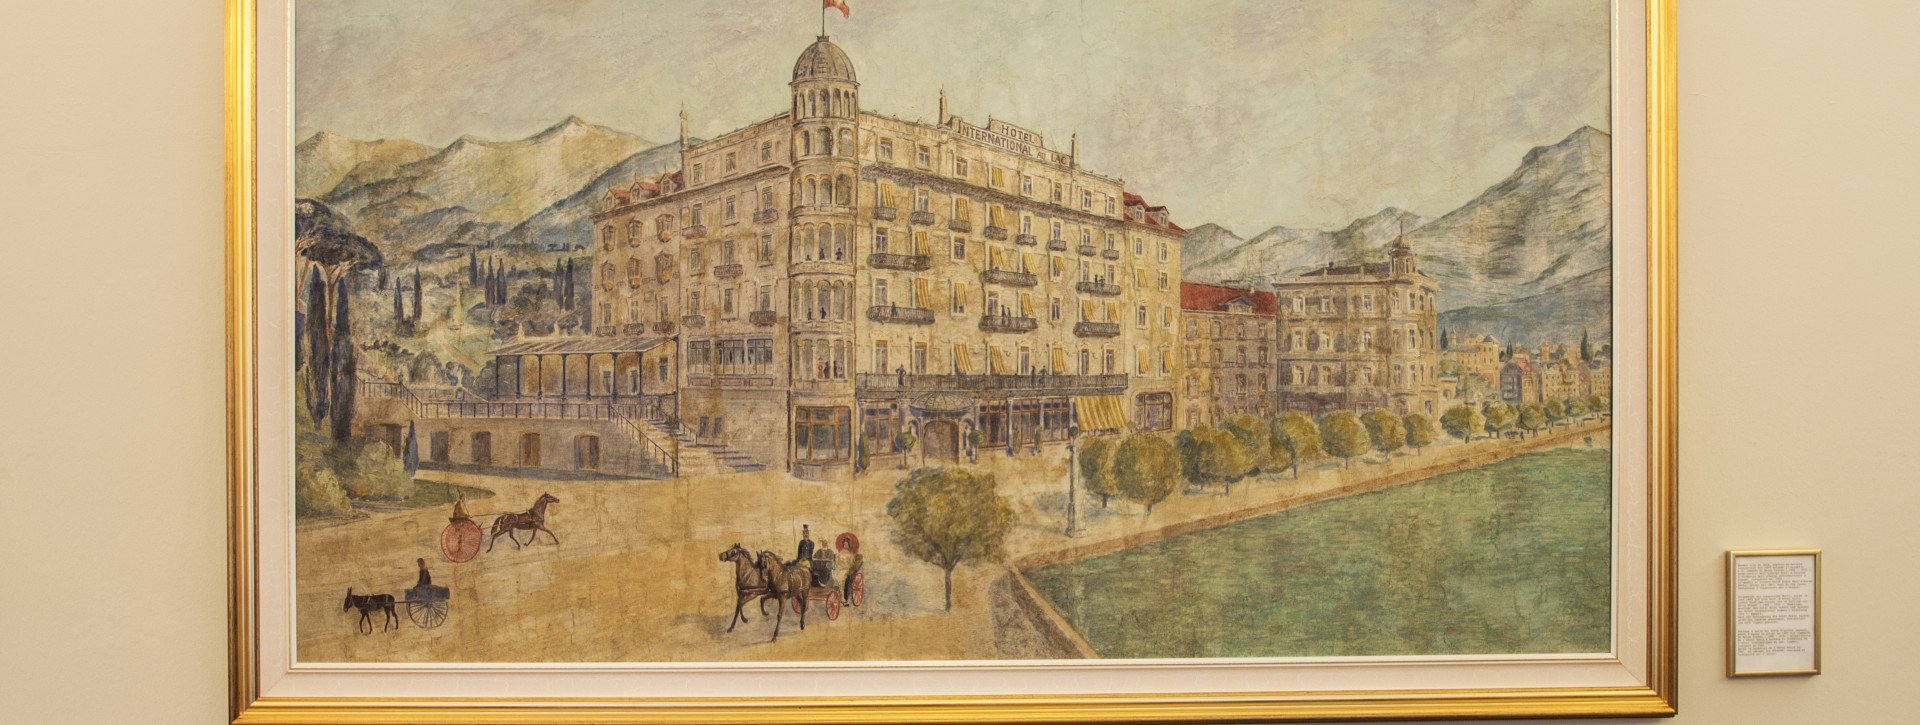 Painting of the hotel building